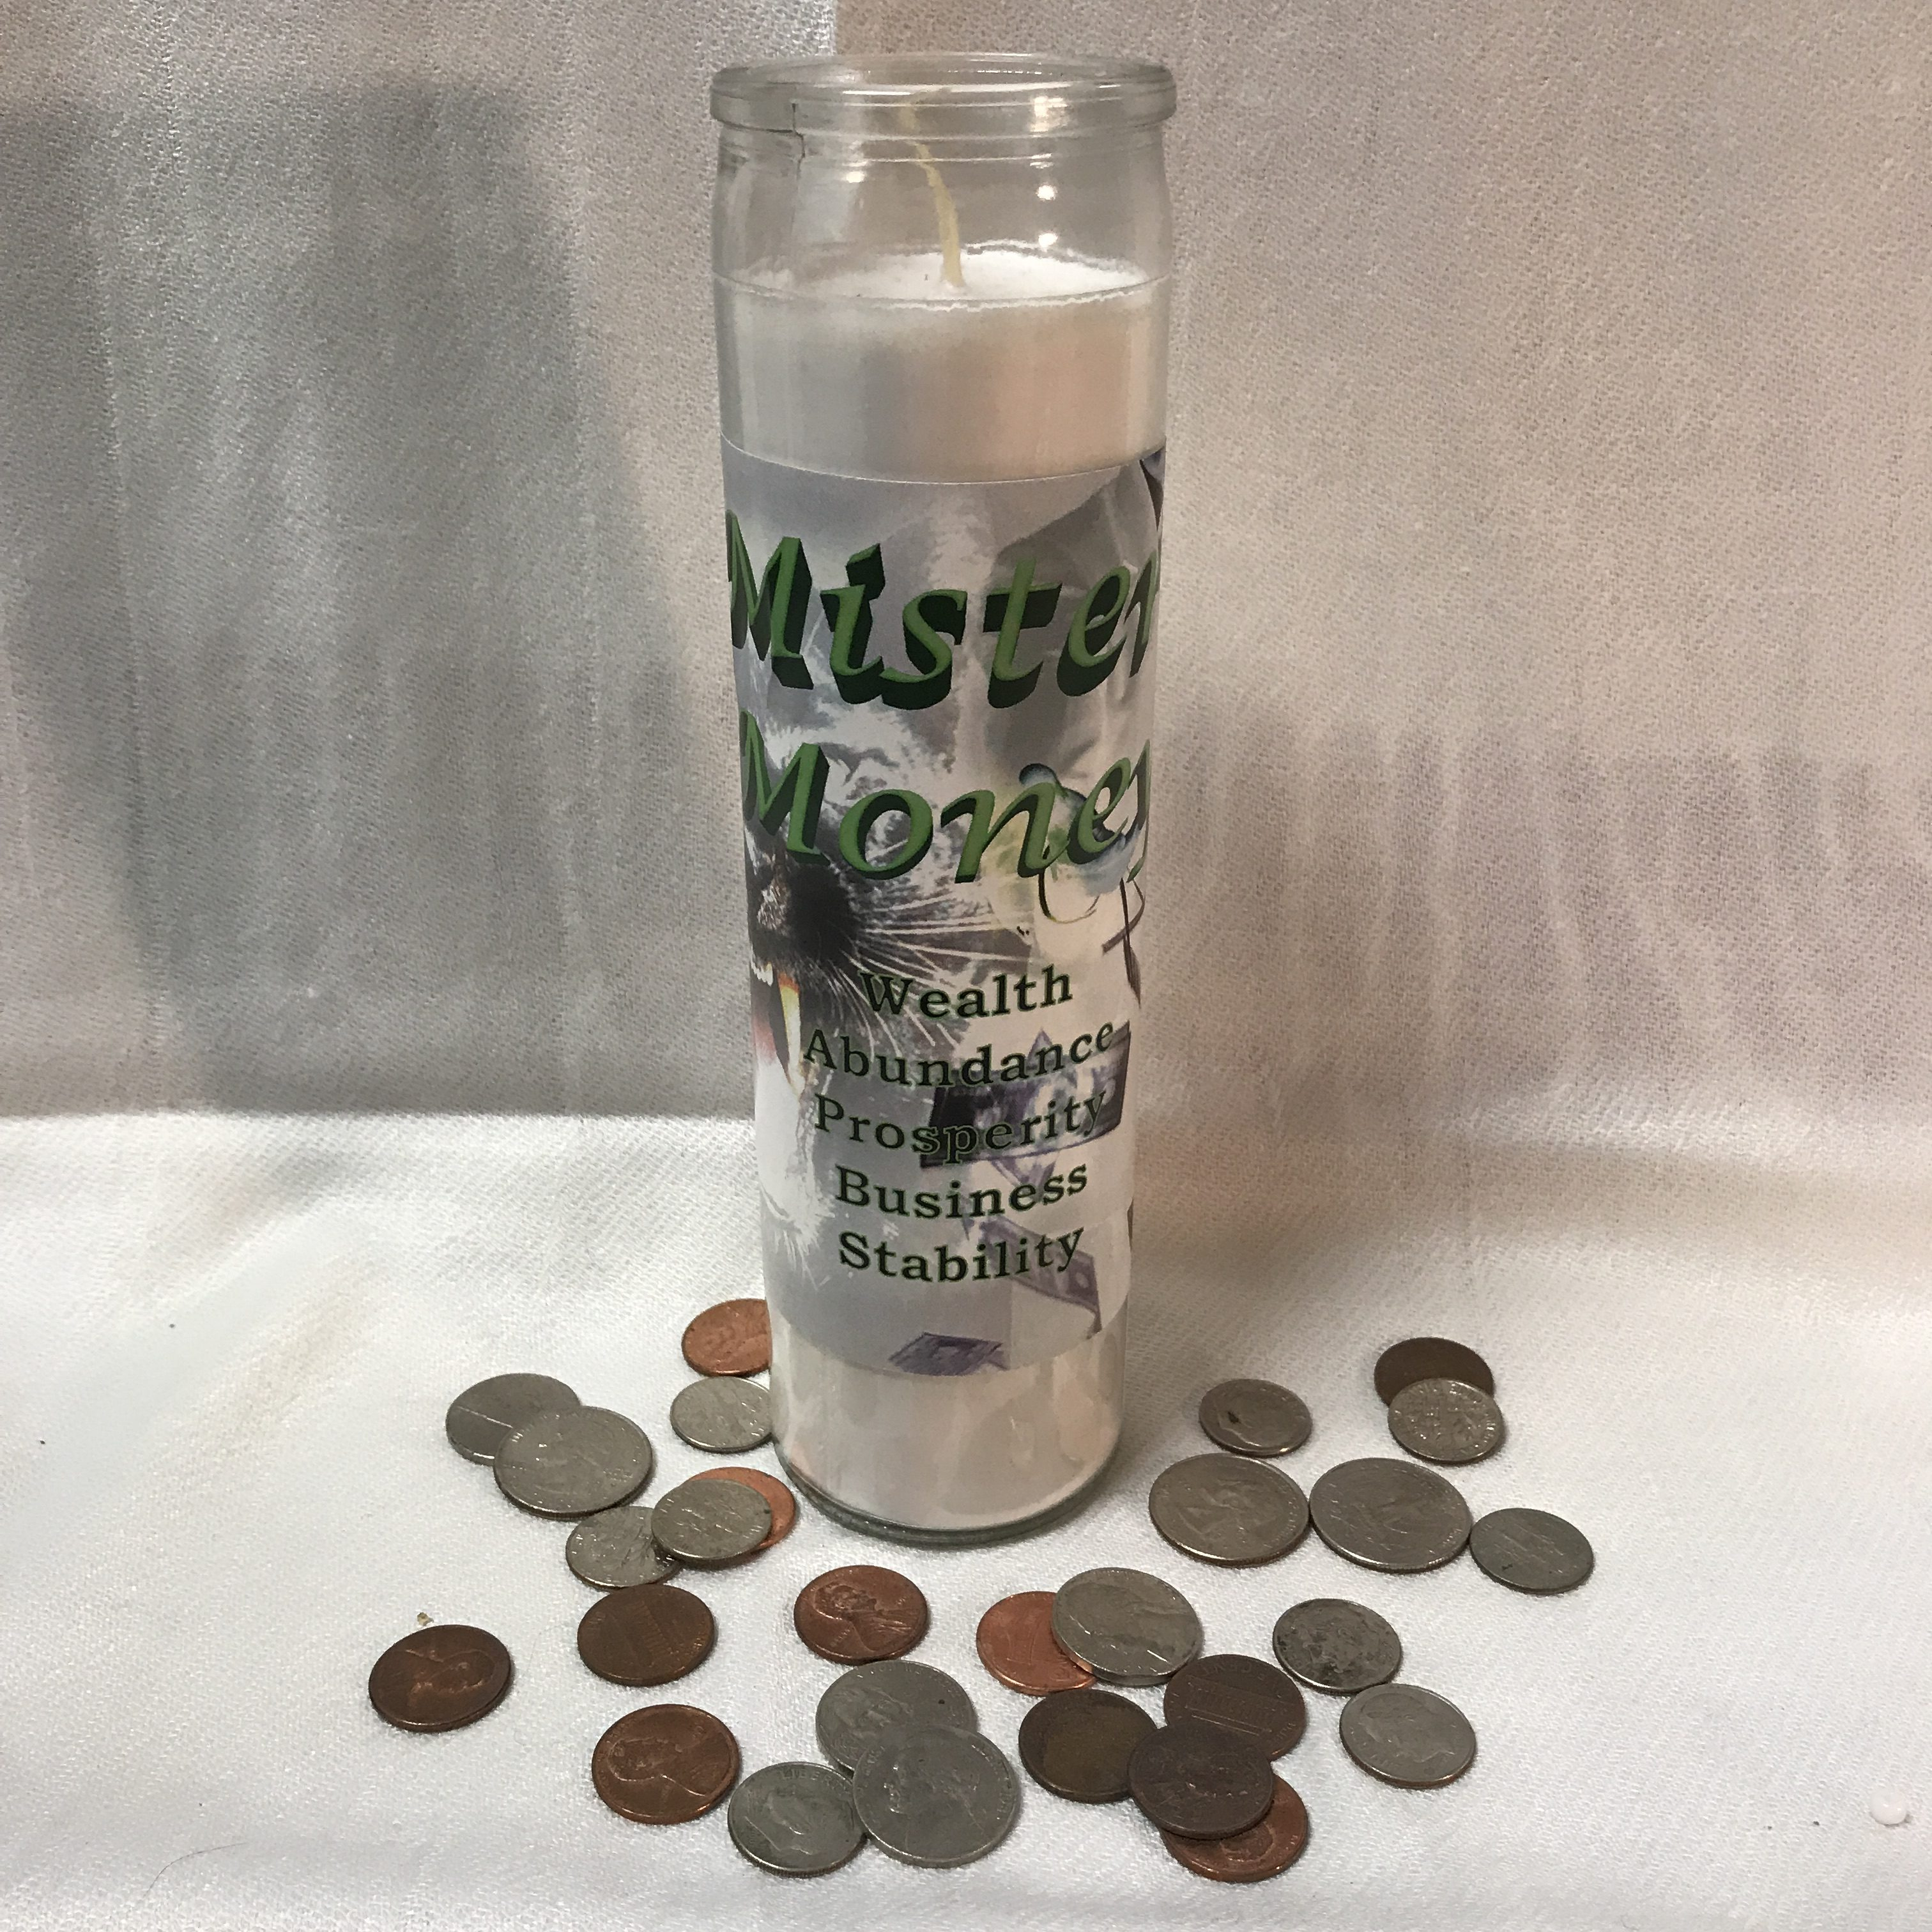 Mister Money Spiritual Candle